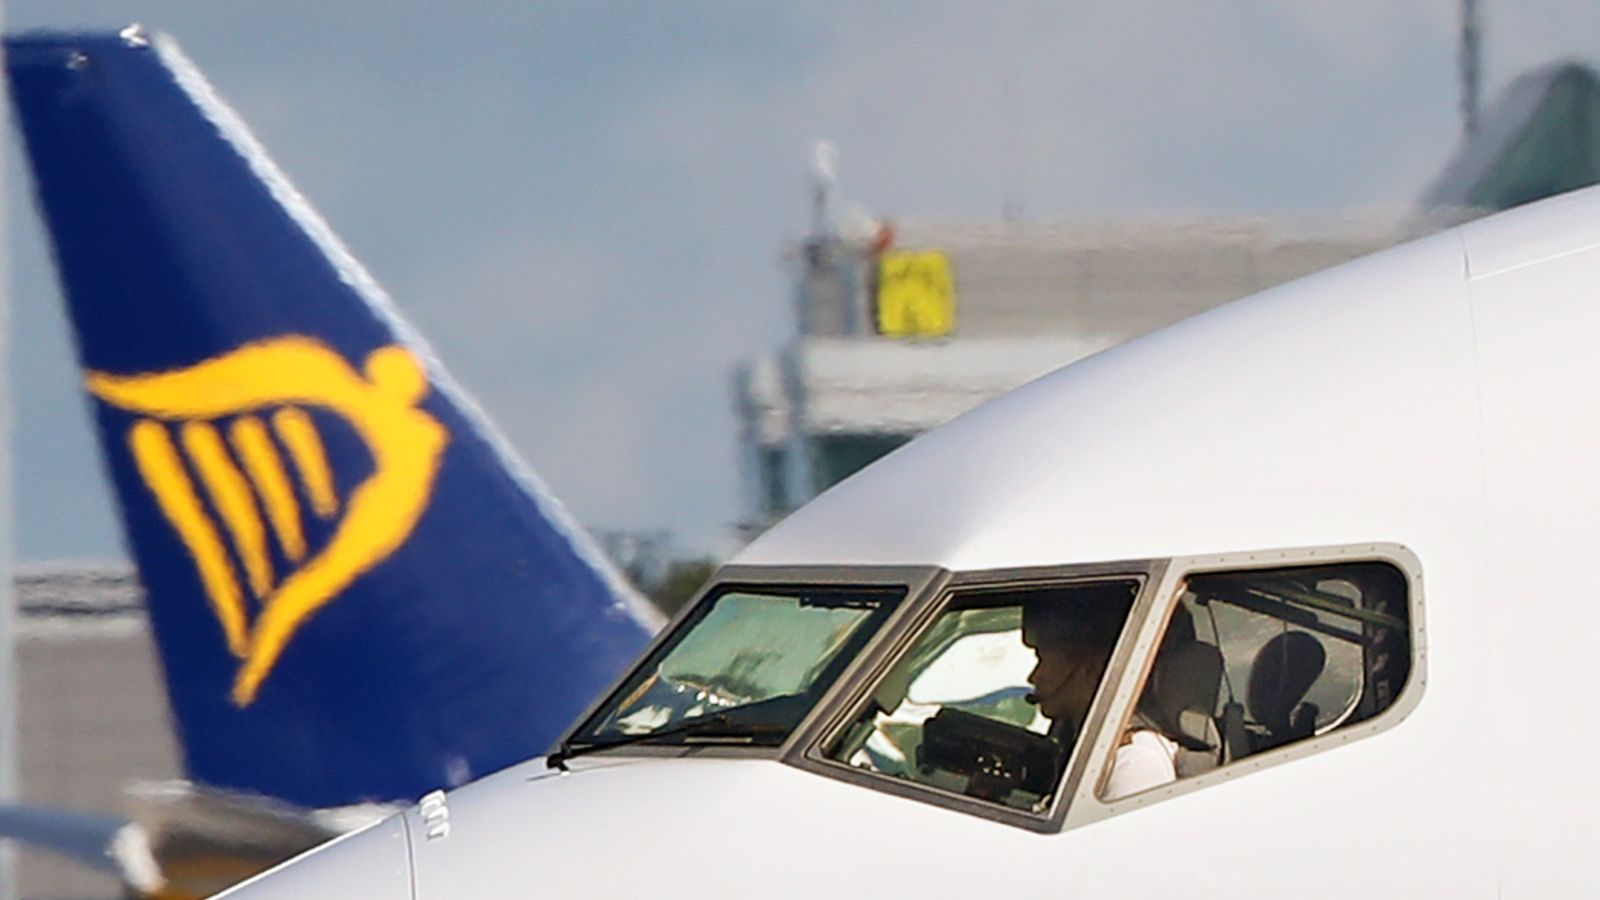 Coronavirus: Ryanair cuts Italy flights - English